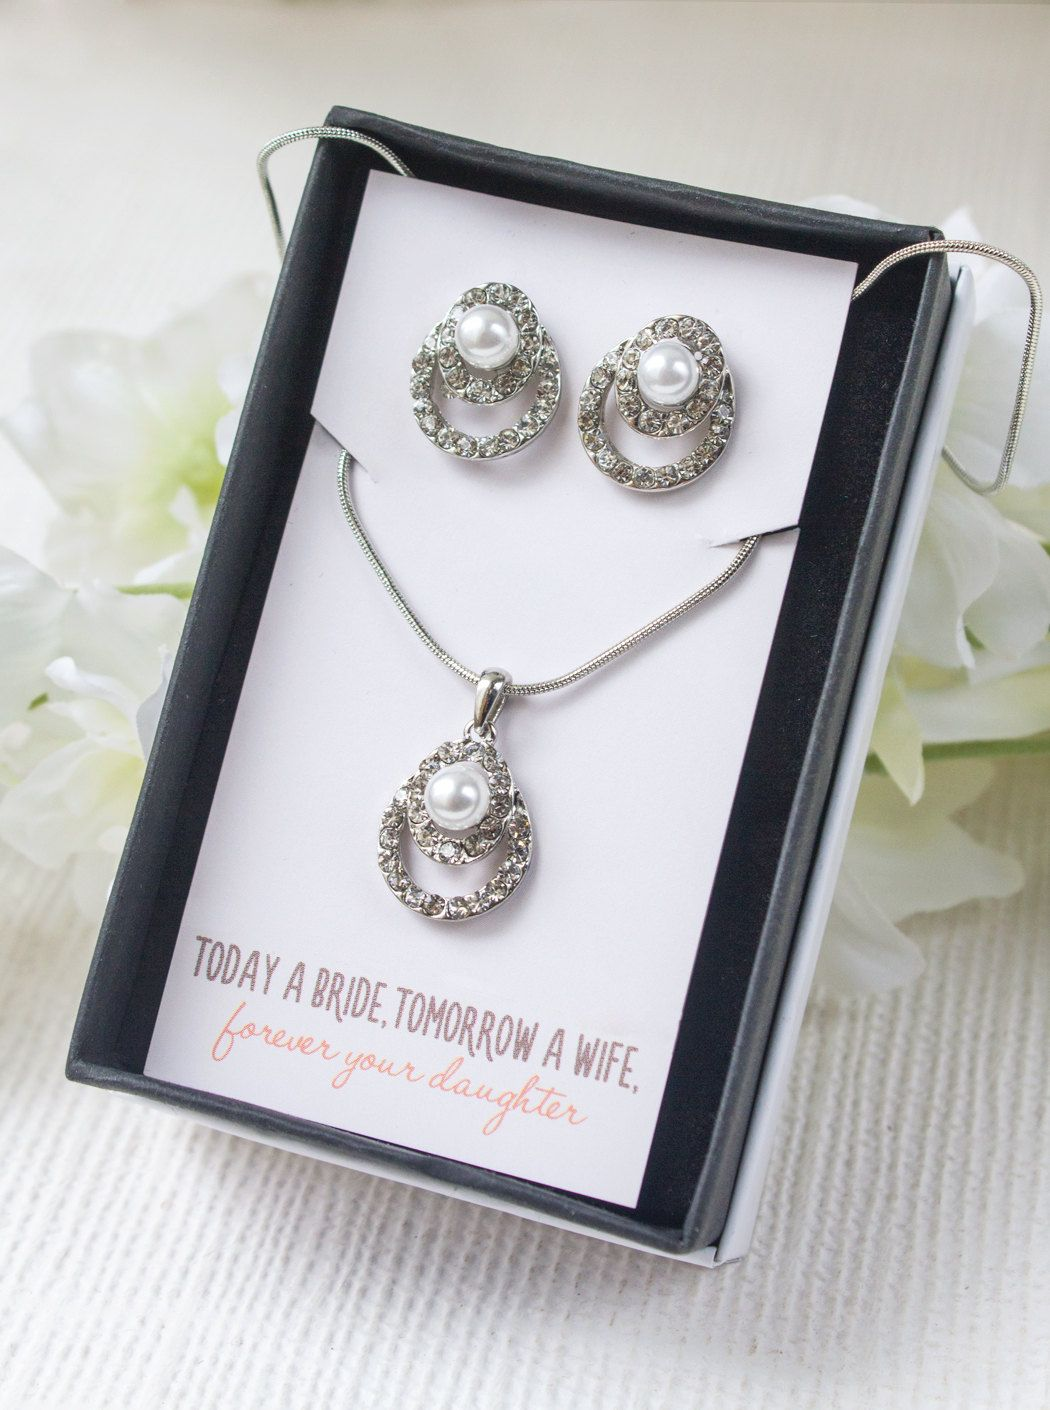 Mother of the Bride Gift, Mother of the Bride Necklace, Personalized Bridesmaid Gift, Bridesmaid Jewelry Set, Bridesmaid Necklace Set, N513 by AMYOBridal on Etsy https://www.etsy.com/listing/229452672/mother-of-the-bride-gift-mother-of-the